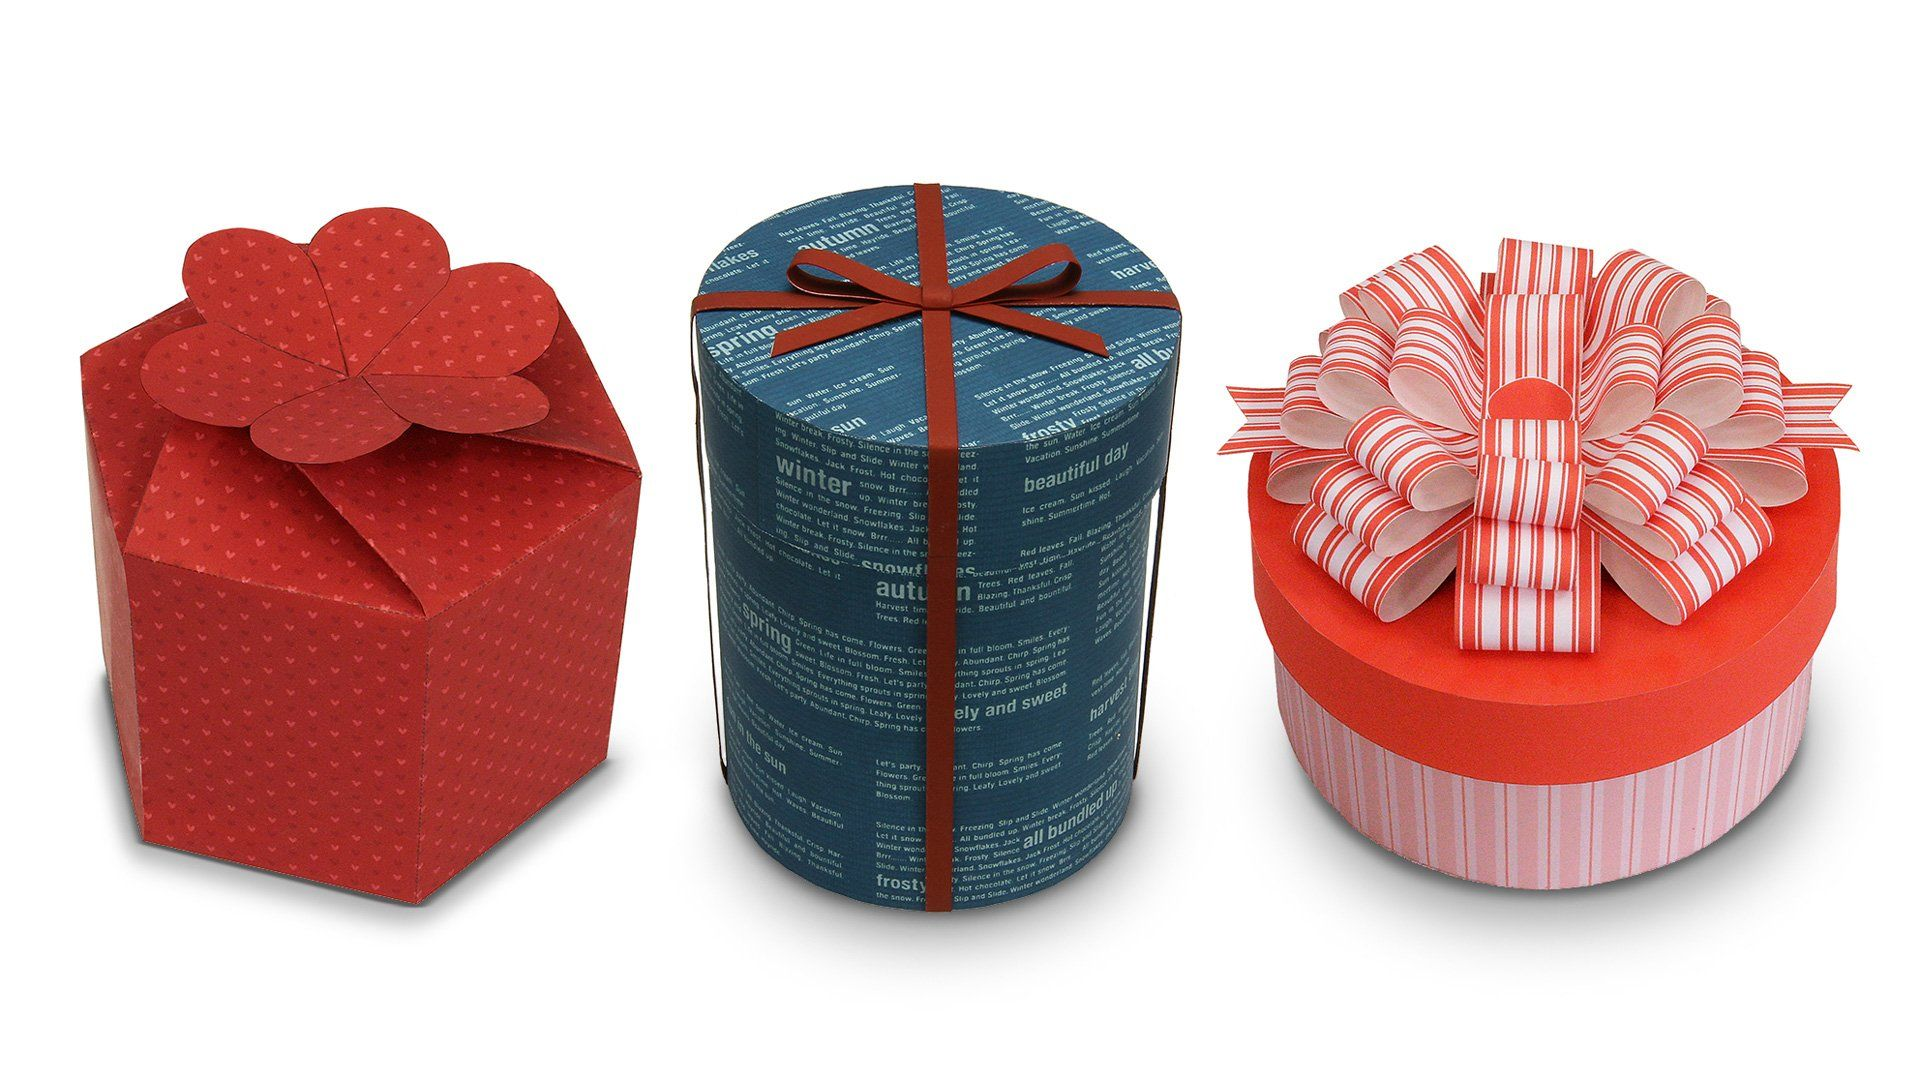 Three homemade decorative gift boxes in different shapes.